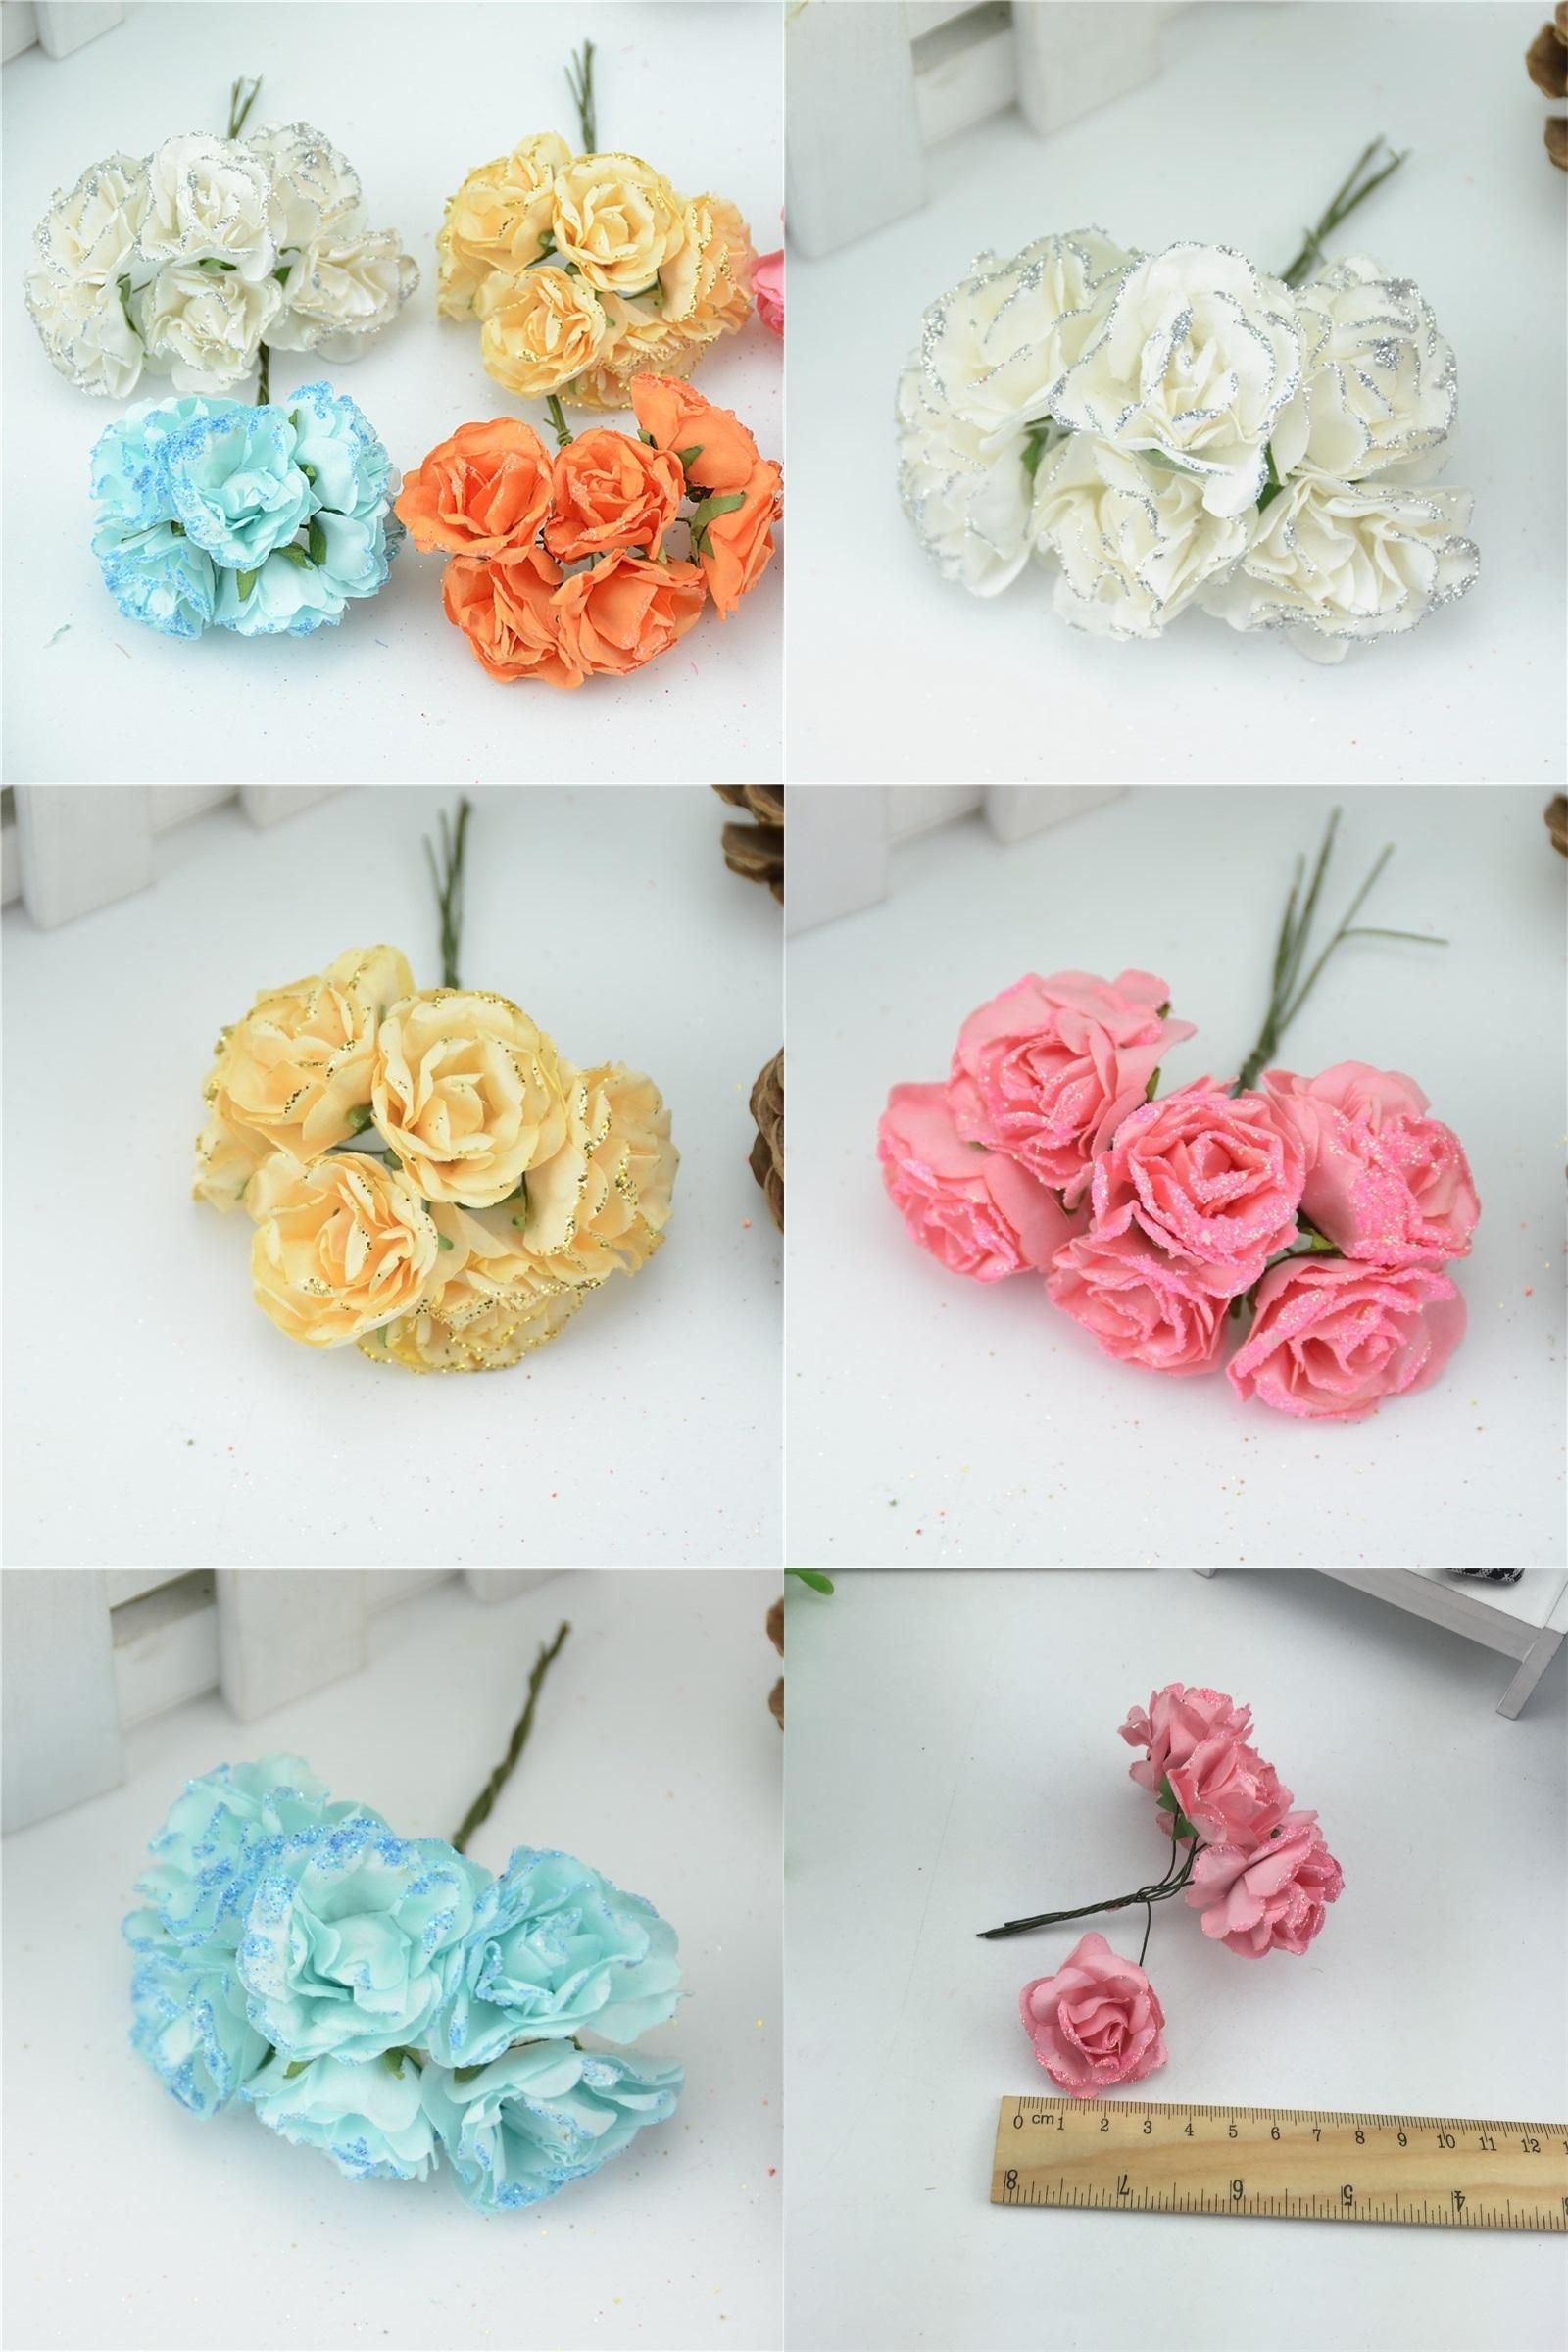 Visit to buy 6pcslot 4cm heads peony mini paper flowers bouquet visit to buy heads peony mini paper flowers bouquet wedding decoration paper flower for diy scrapbooking fake cheap rose flores izmirmasajfo Choice Image